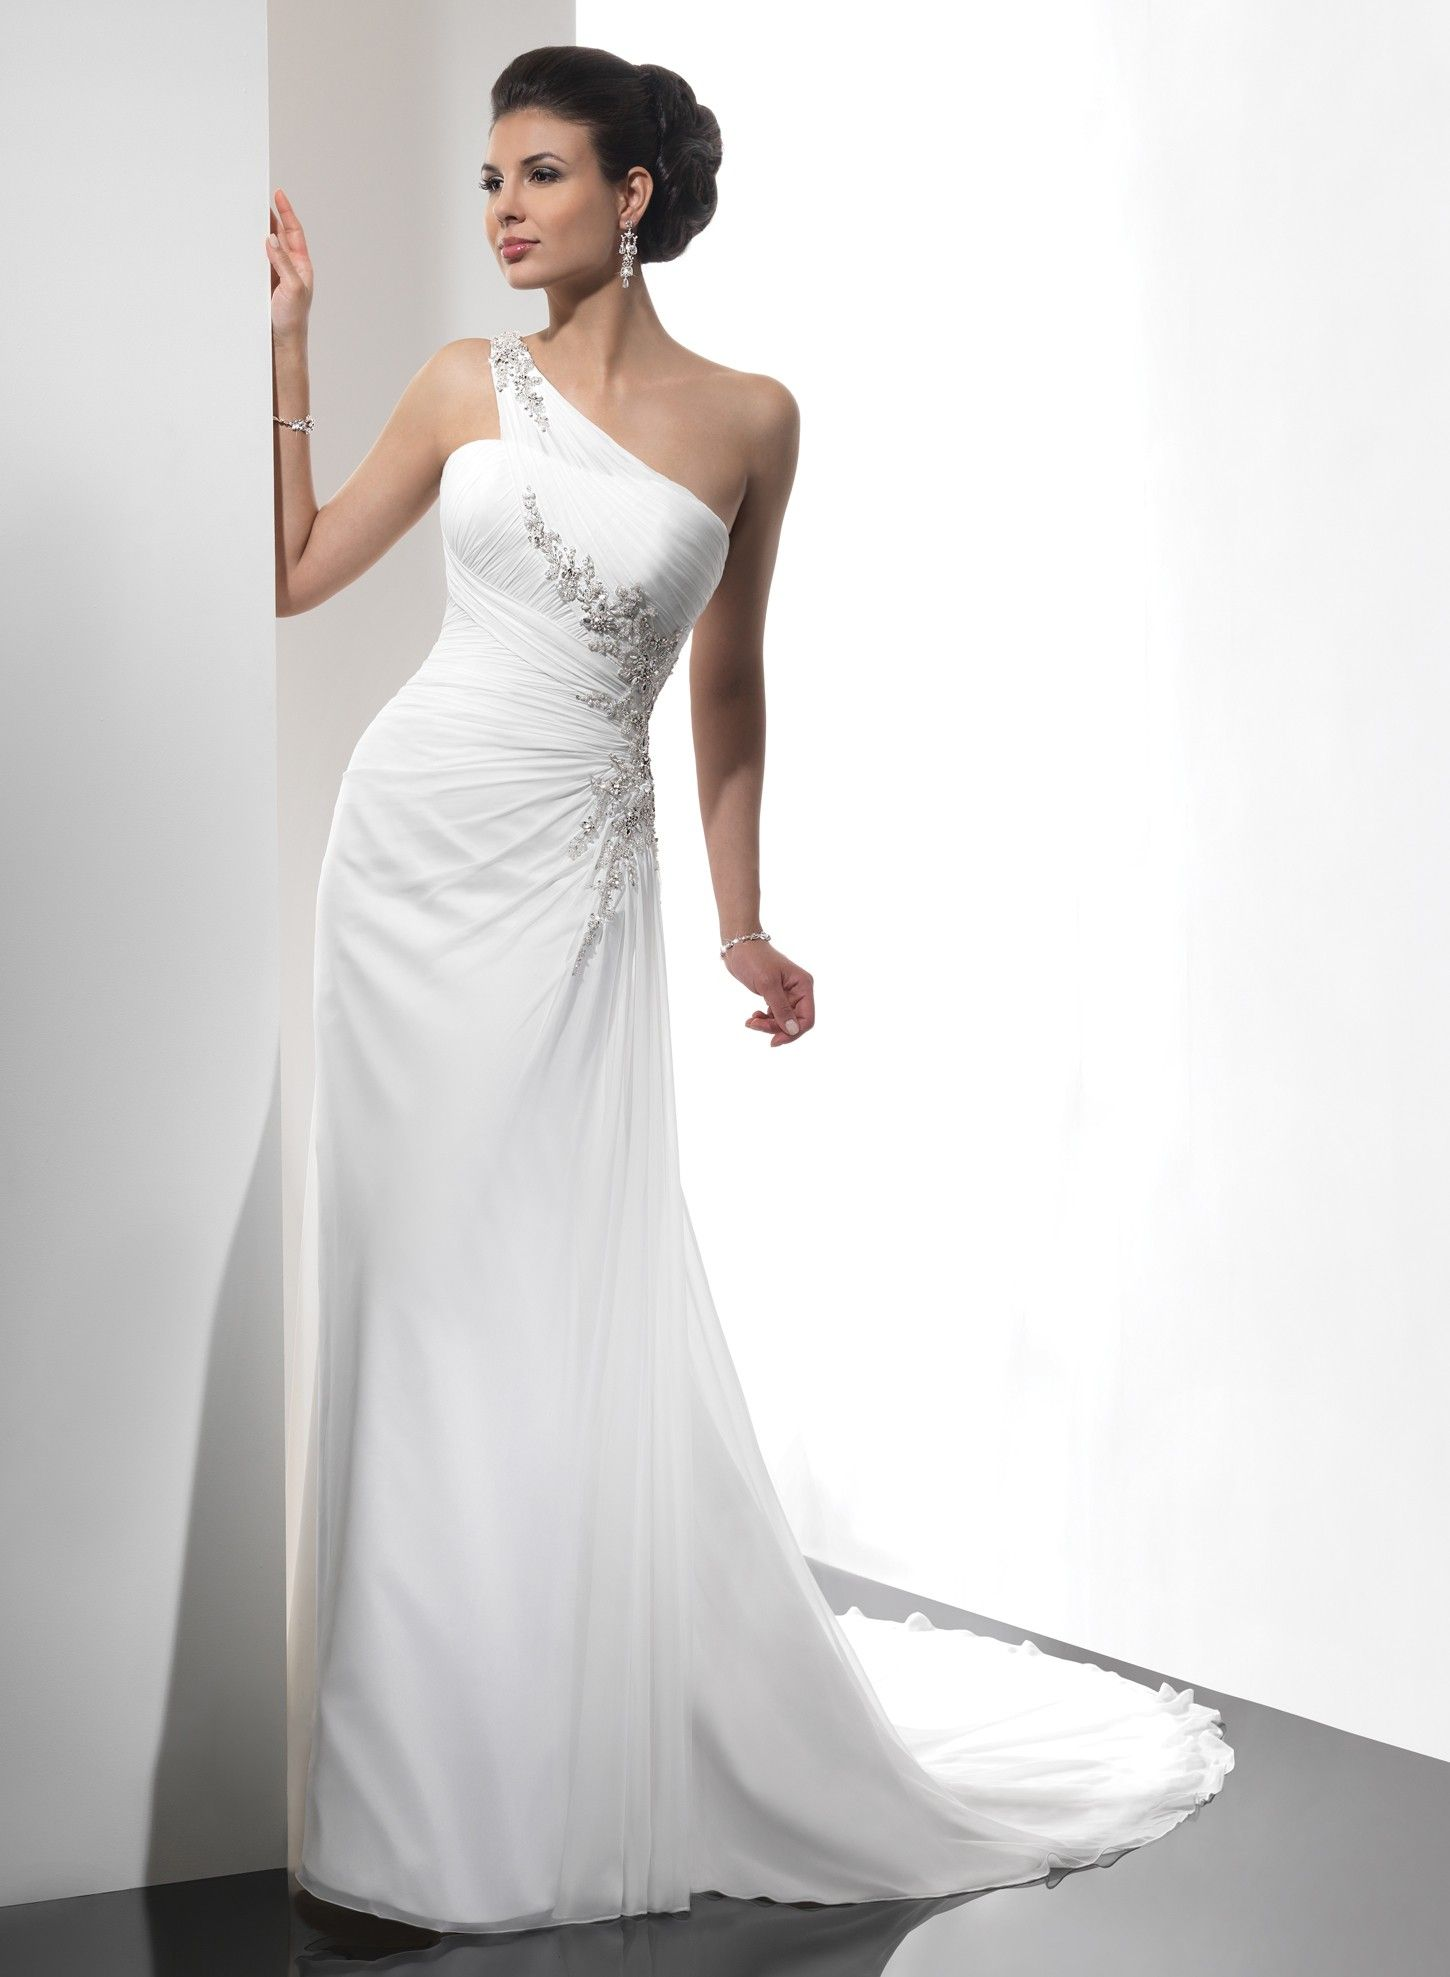 One Shoulder Bridal Gowns Sequence Wedding Dress Item Code 7789708780